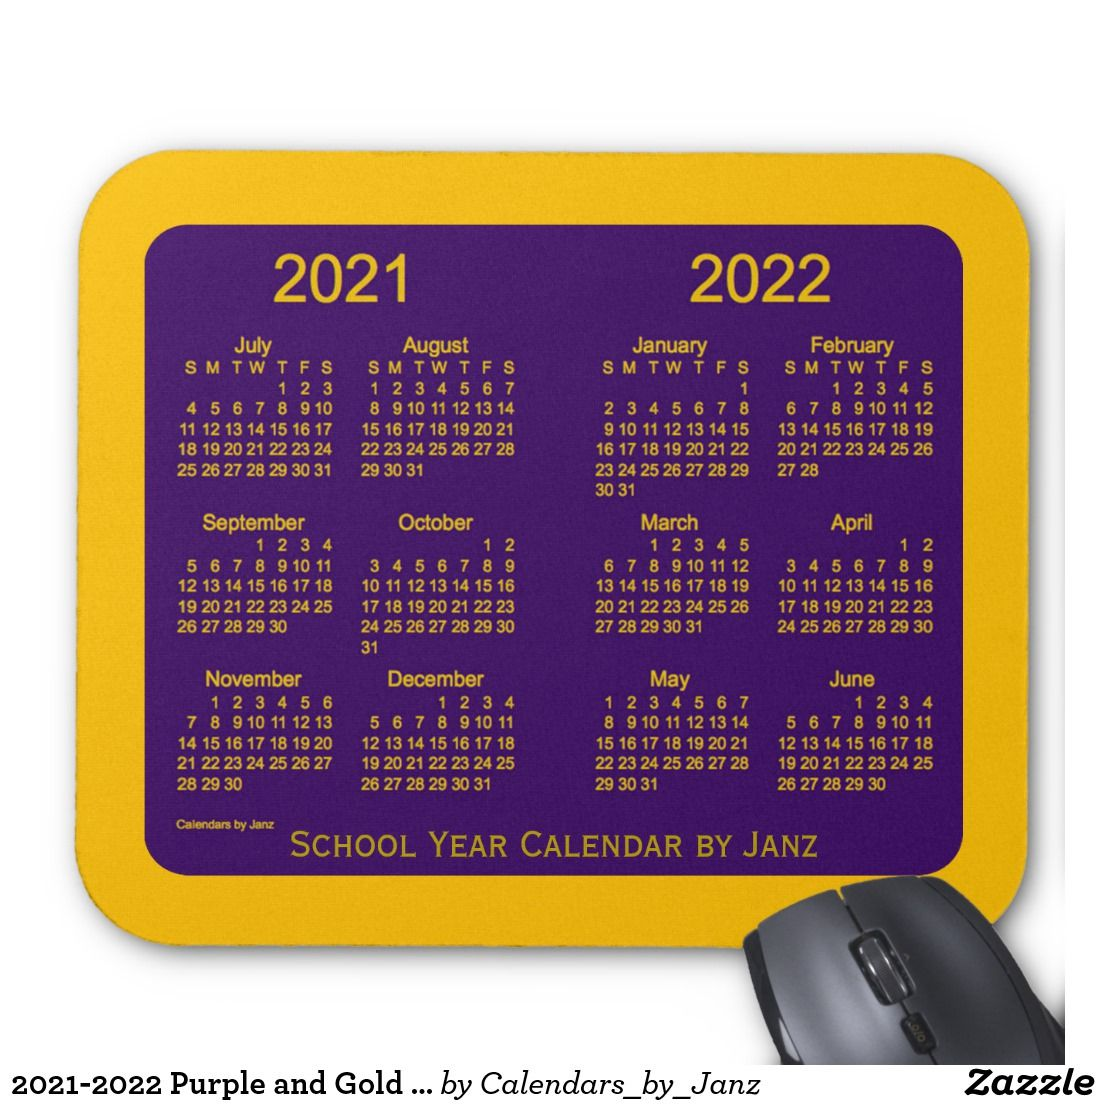 20212022 Purple and Gold School Calendar by Janz Mouse